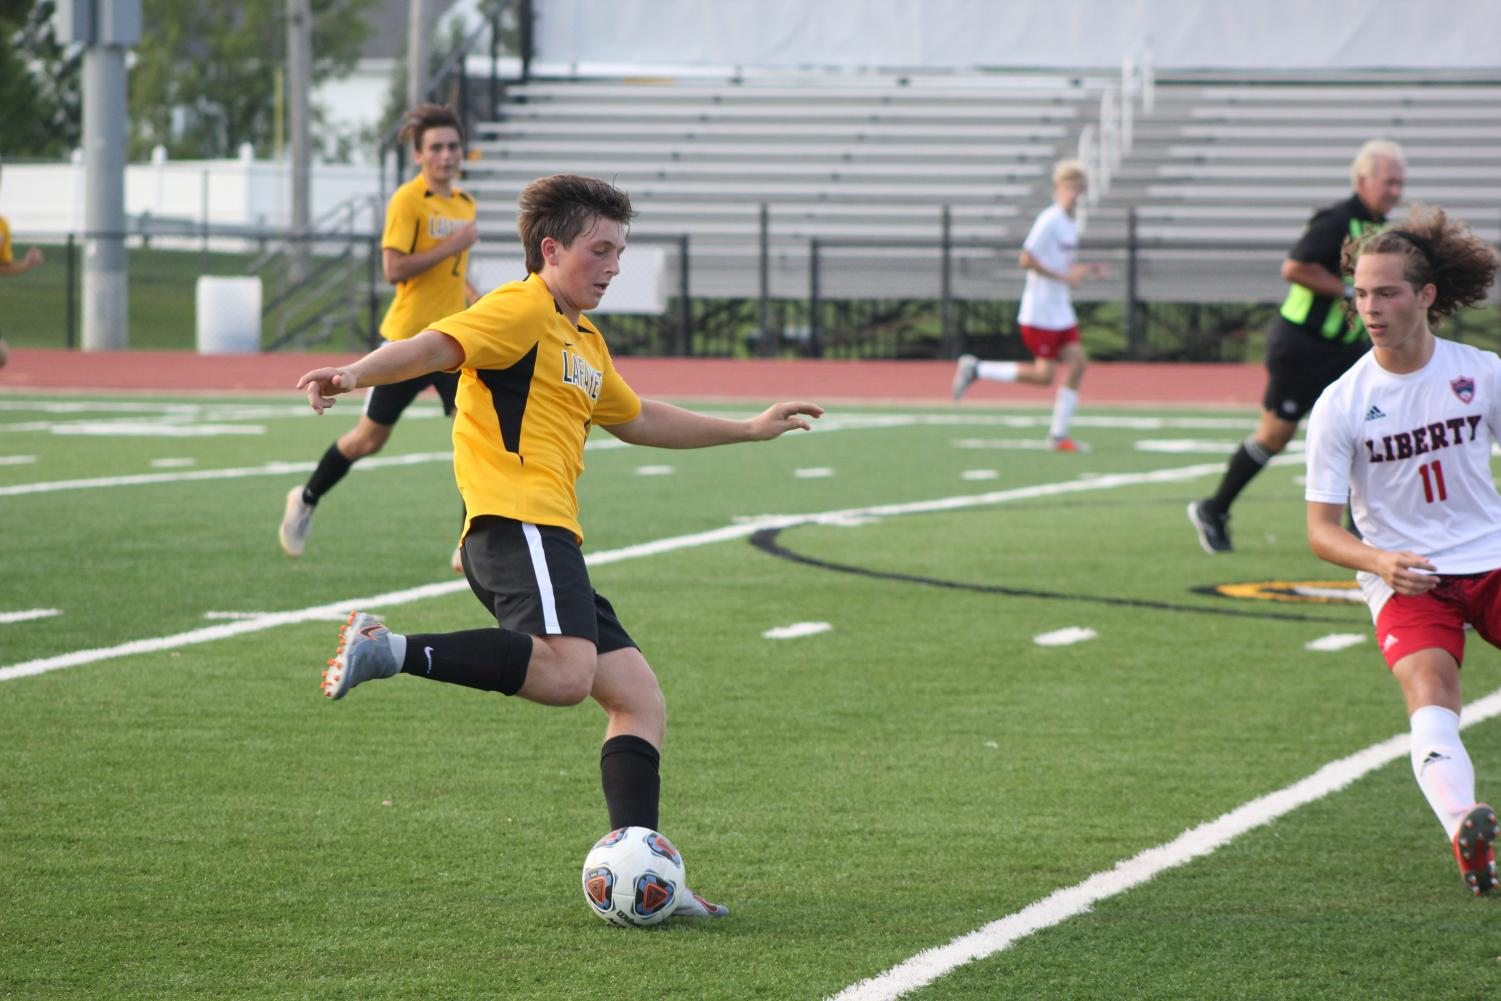 Senior Dylan Stovall prepares to kick the ball down field in a game against Liberty high school. Lancers won that game 5-0.